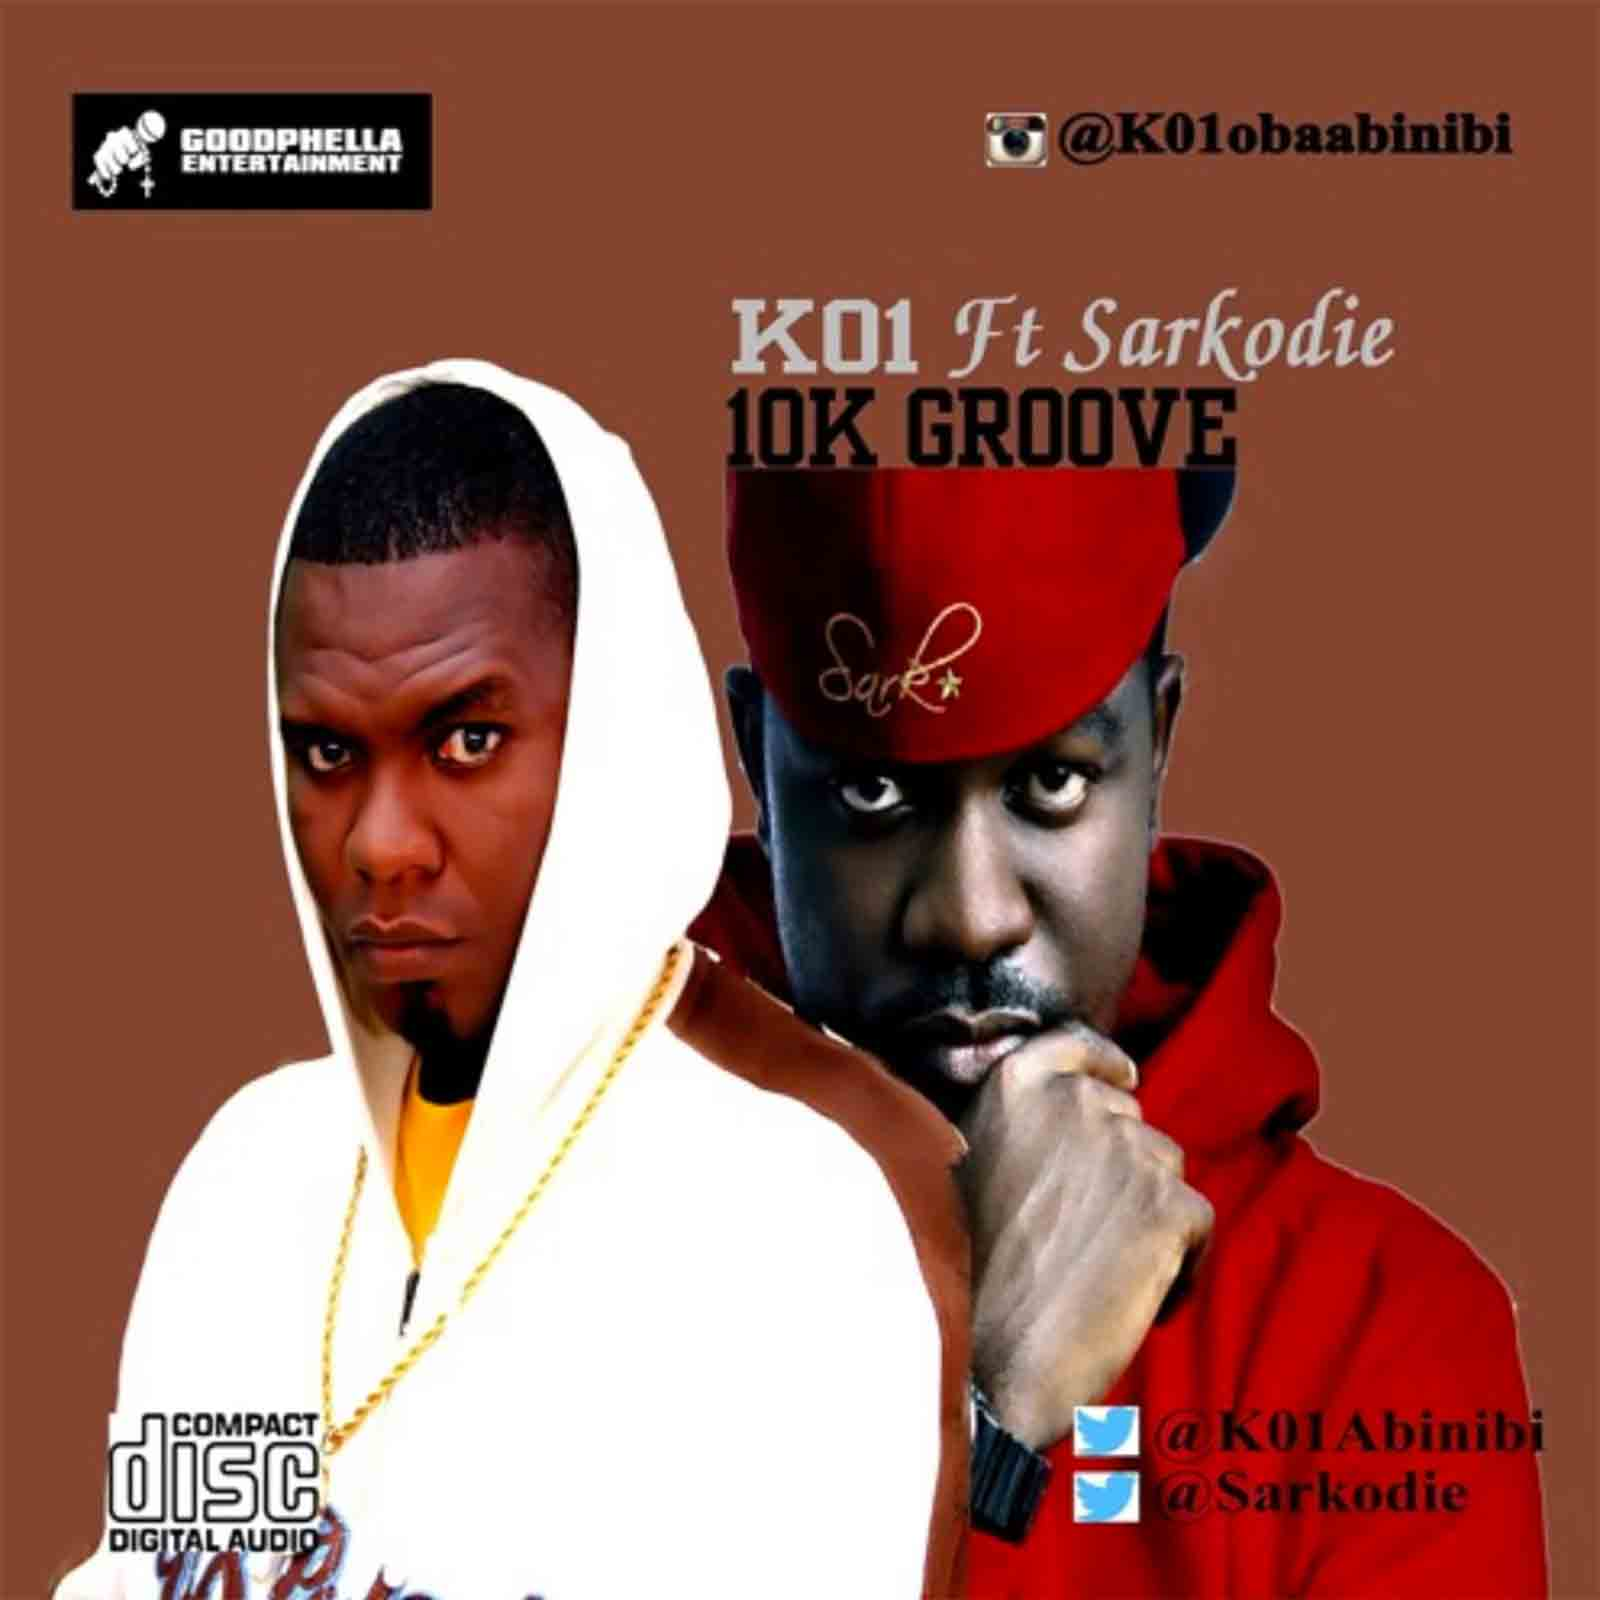 10k Groove by K01 feat. Sarkodie